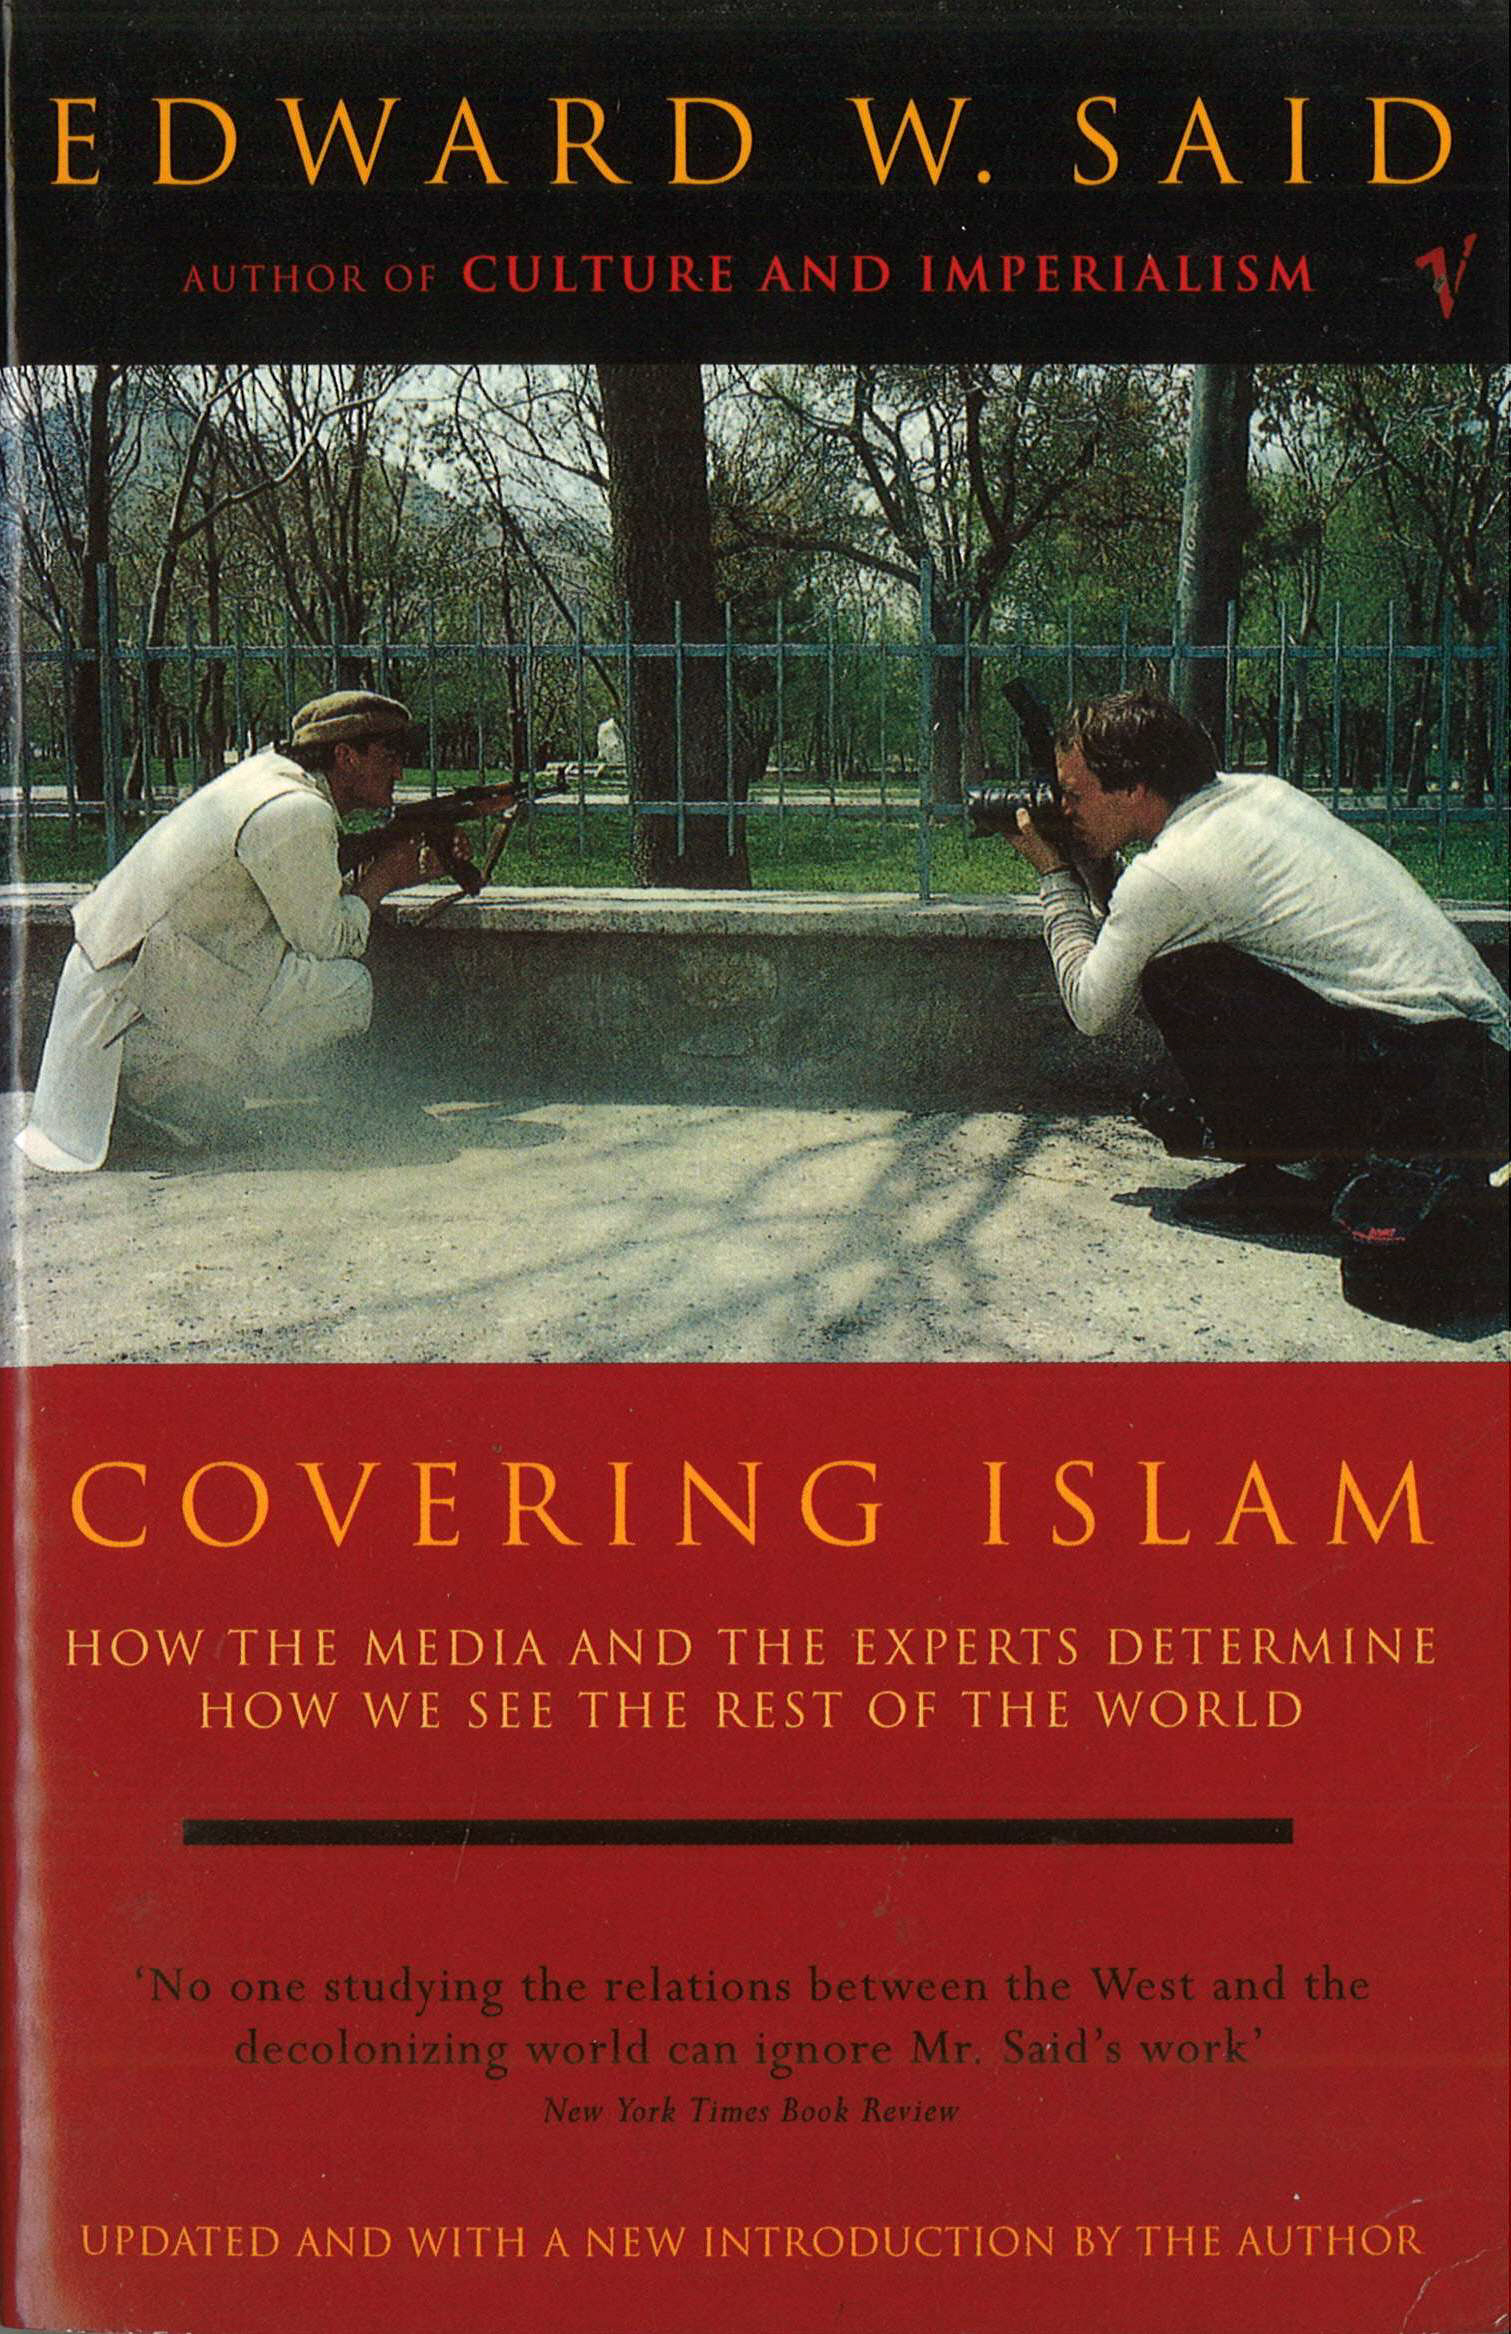 Covering Islam How the Media and the Experts Determine How We See the Rest of the World (Fully Revised Edition)